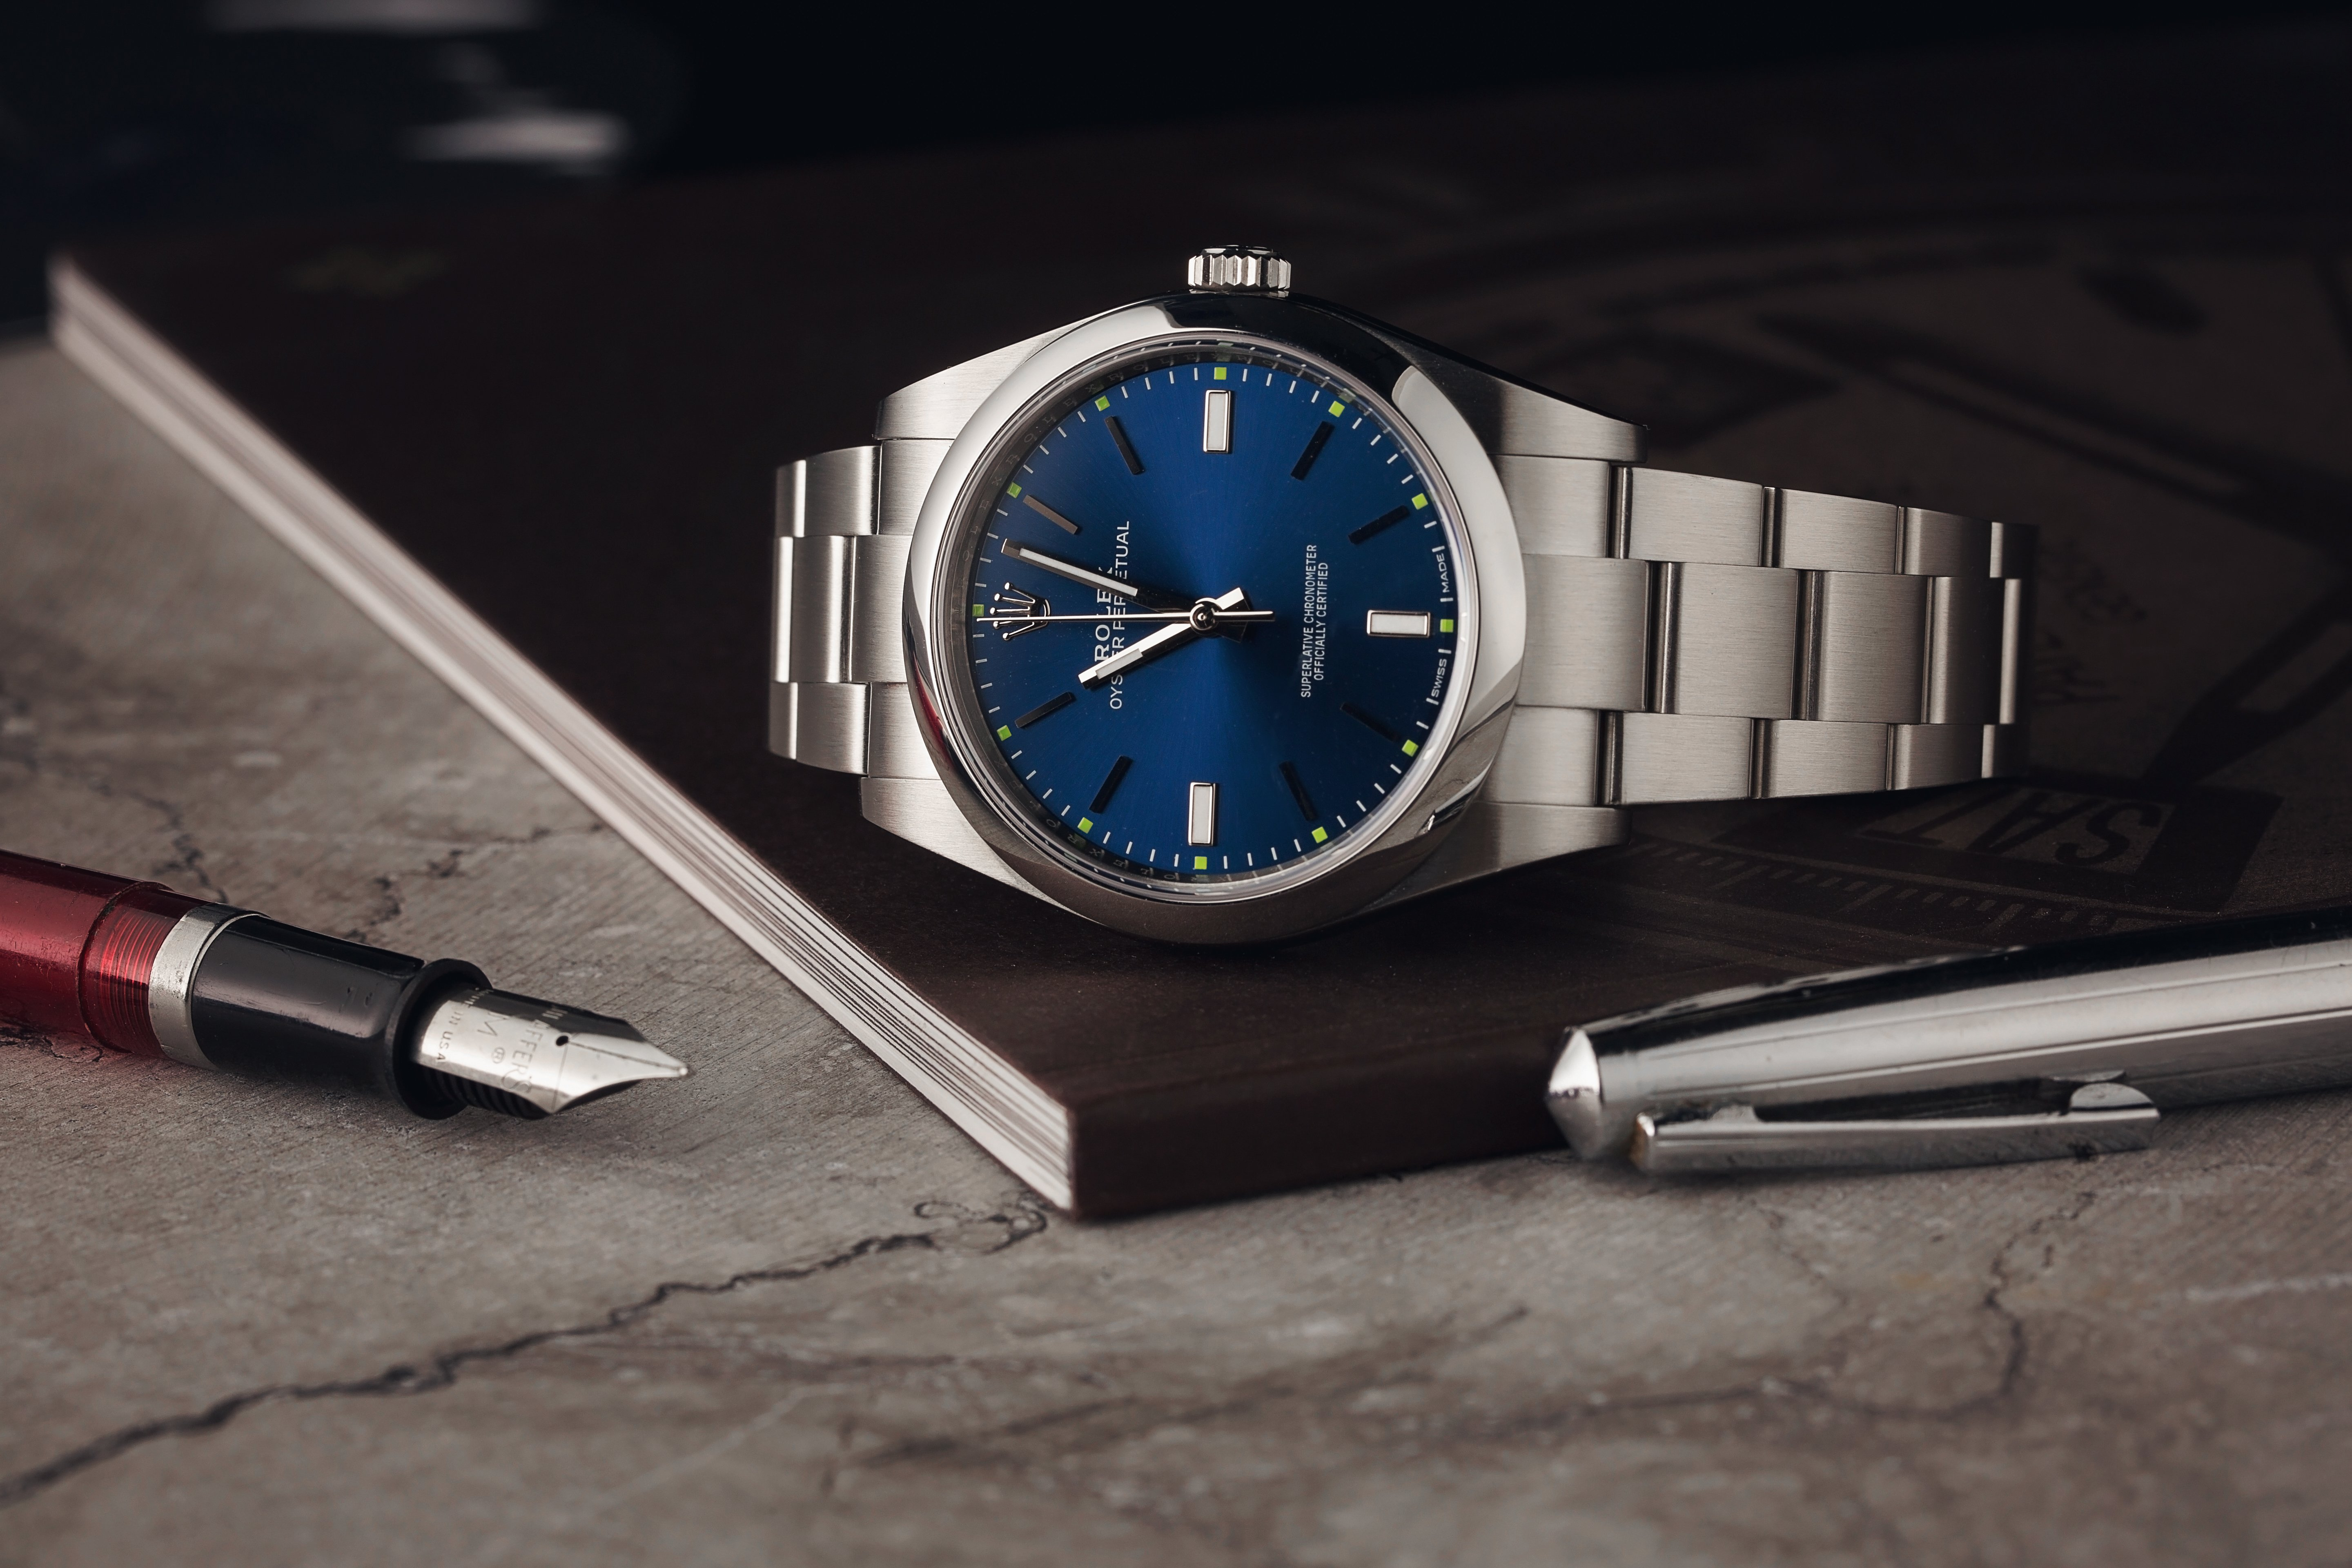 The Rolex Oyster Perpetual ref. 114300